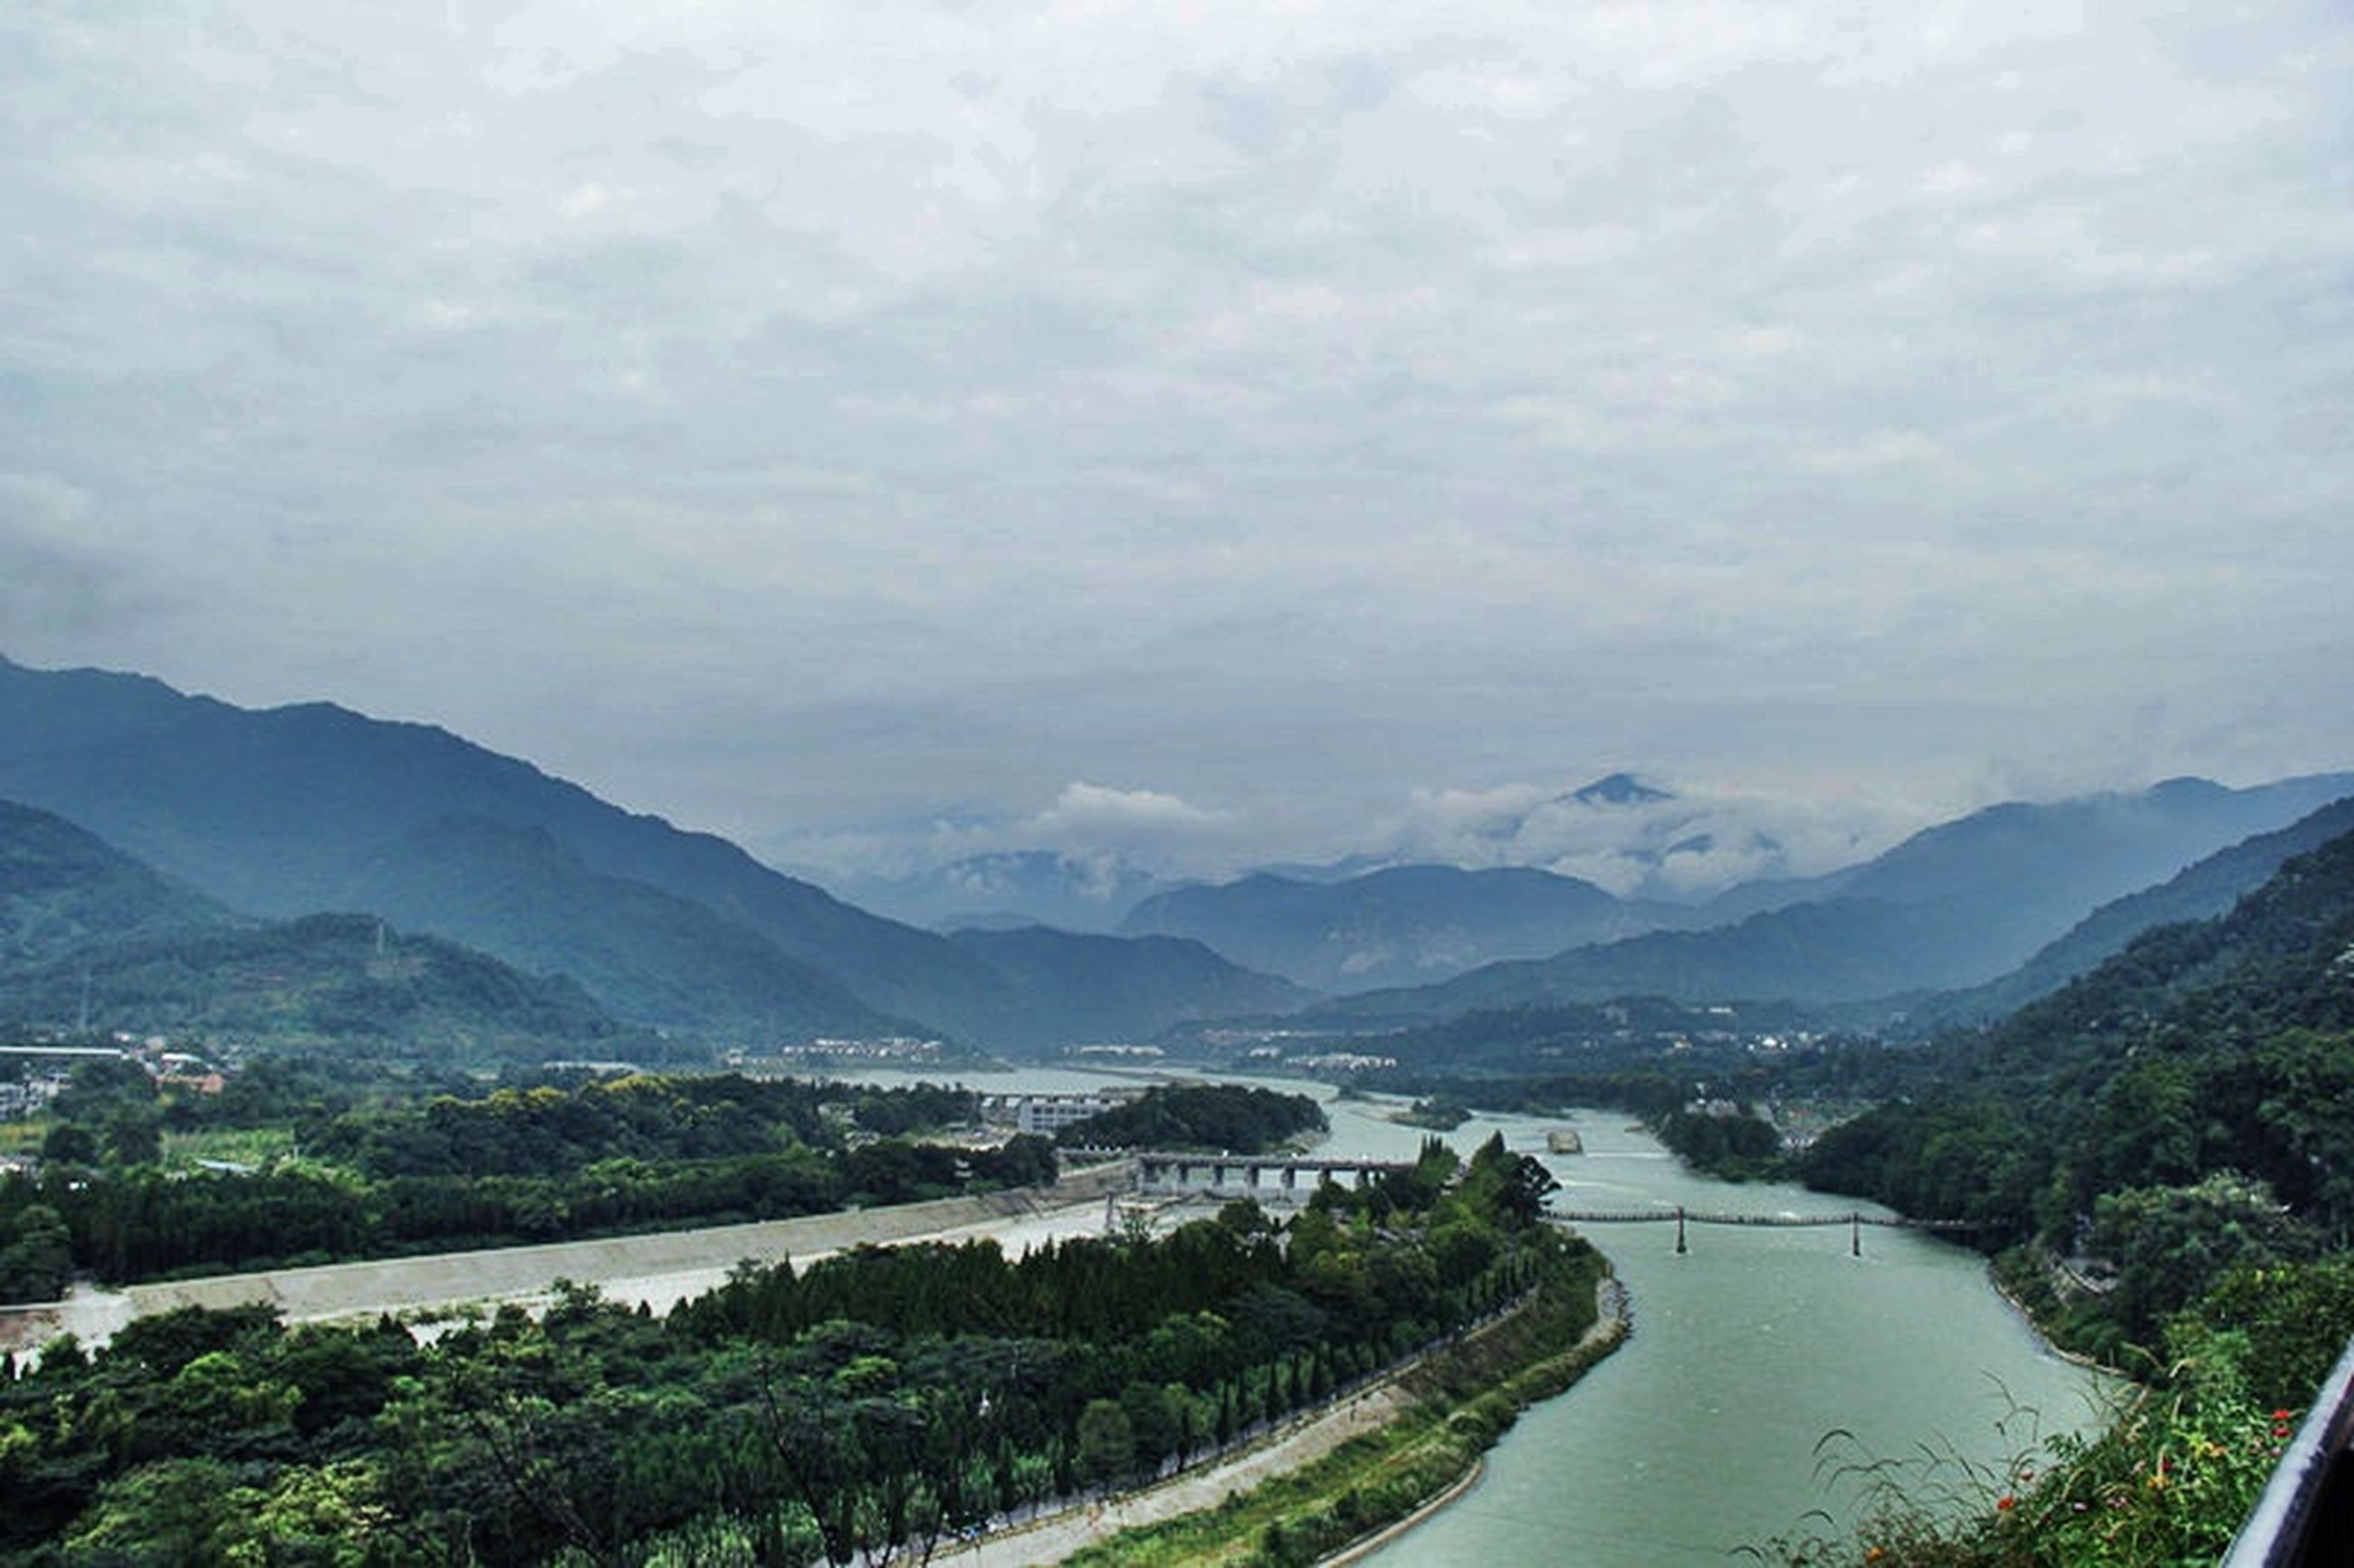 mountain, water, sky, tranquil scene, scenics, mountain range, tranquility, beauty in nature, cloud - sky, nature, lake, cloudy, landscape, river, cloud, tree, idyllic, outdoors, high angle view, sea